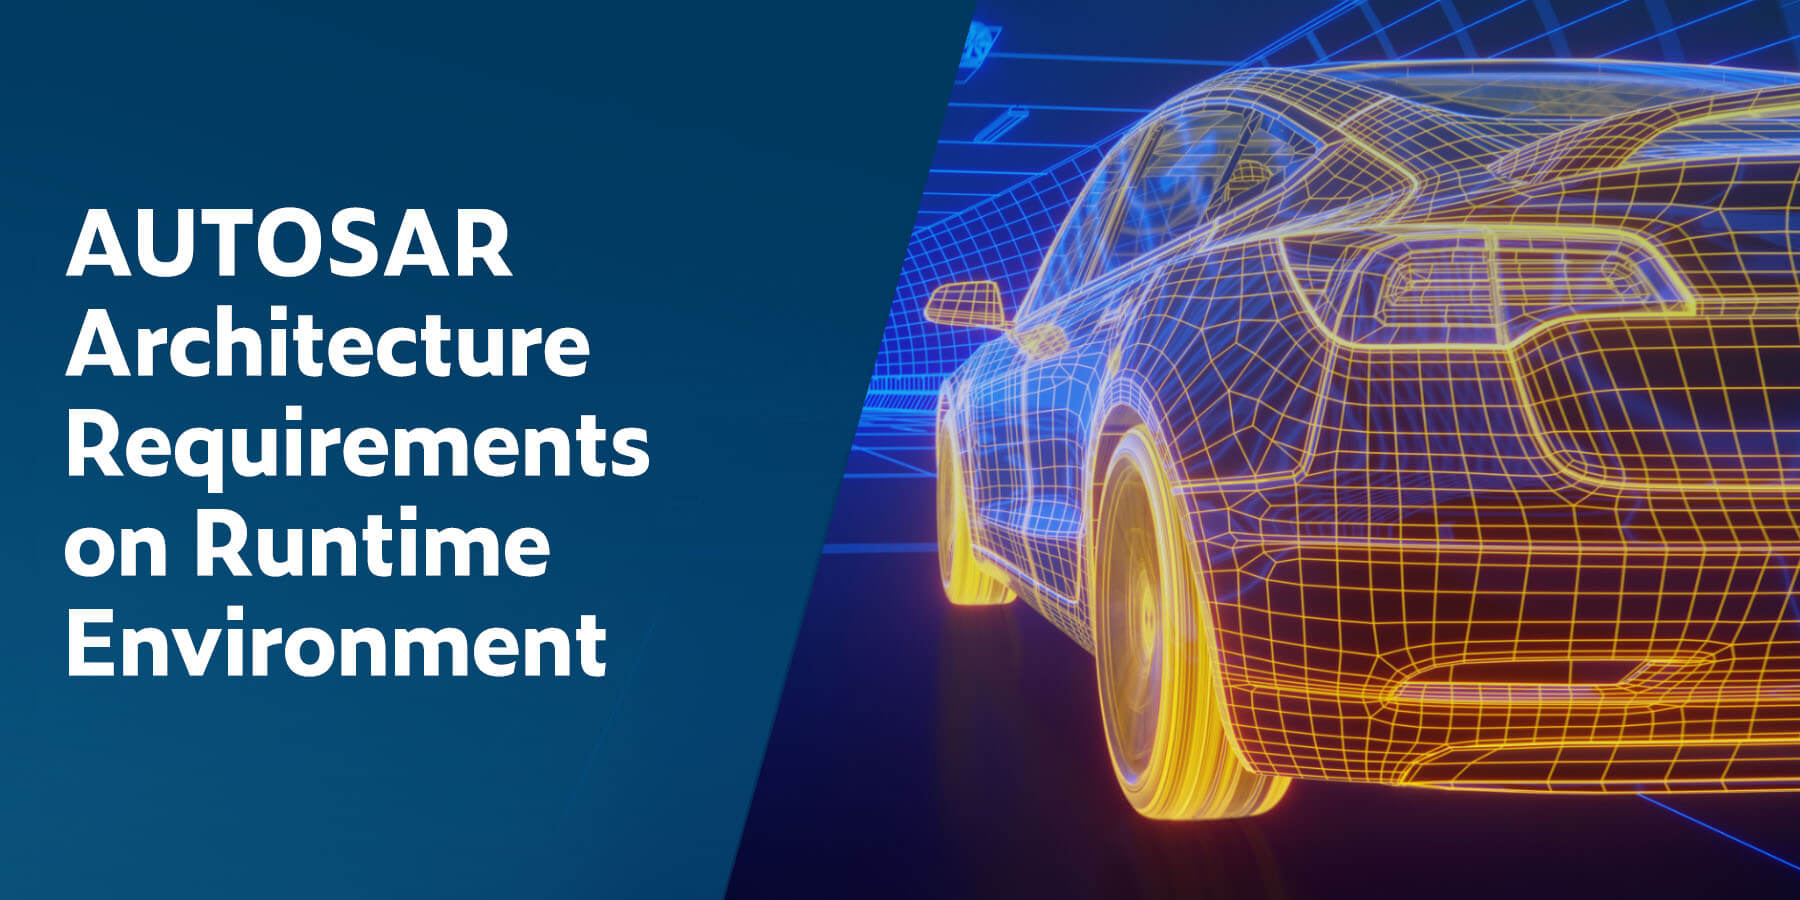 AUTOSAR Architecture Requirements on Runtime Environments